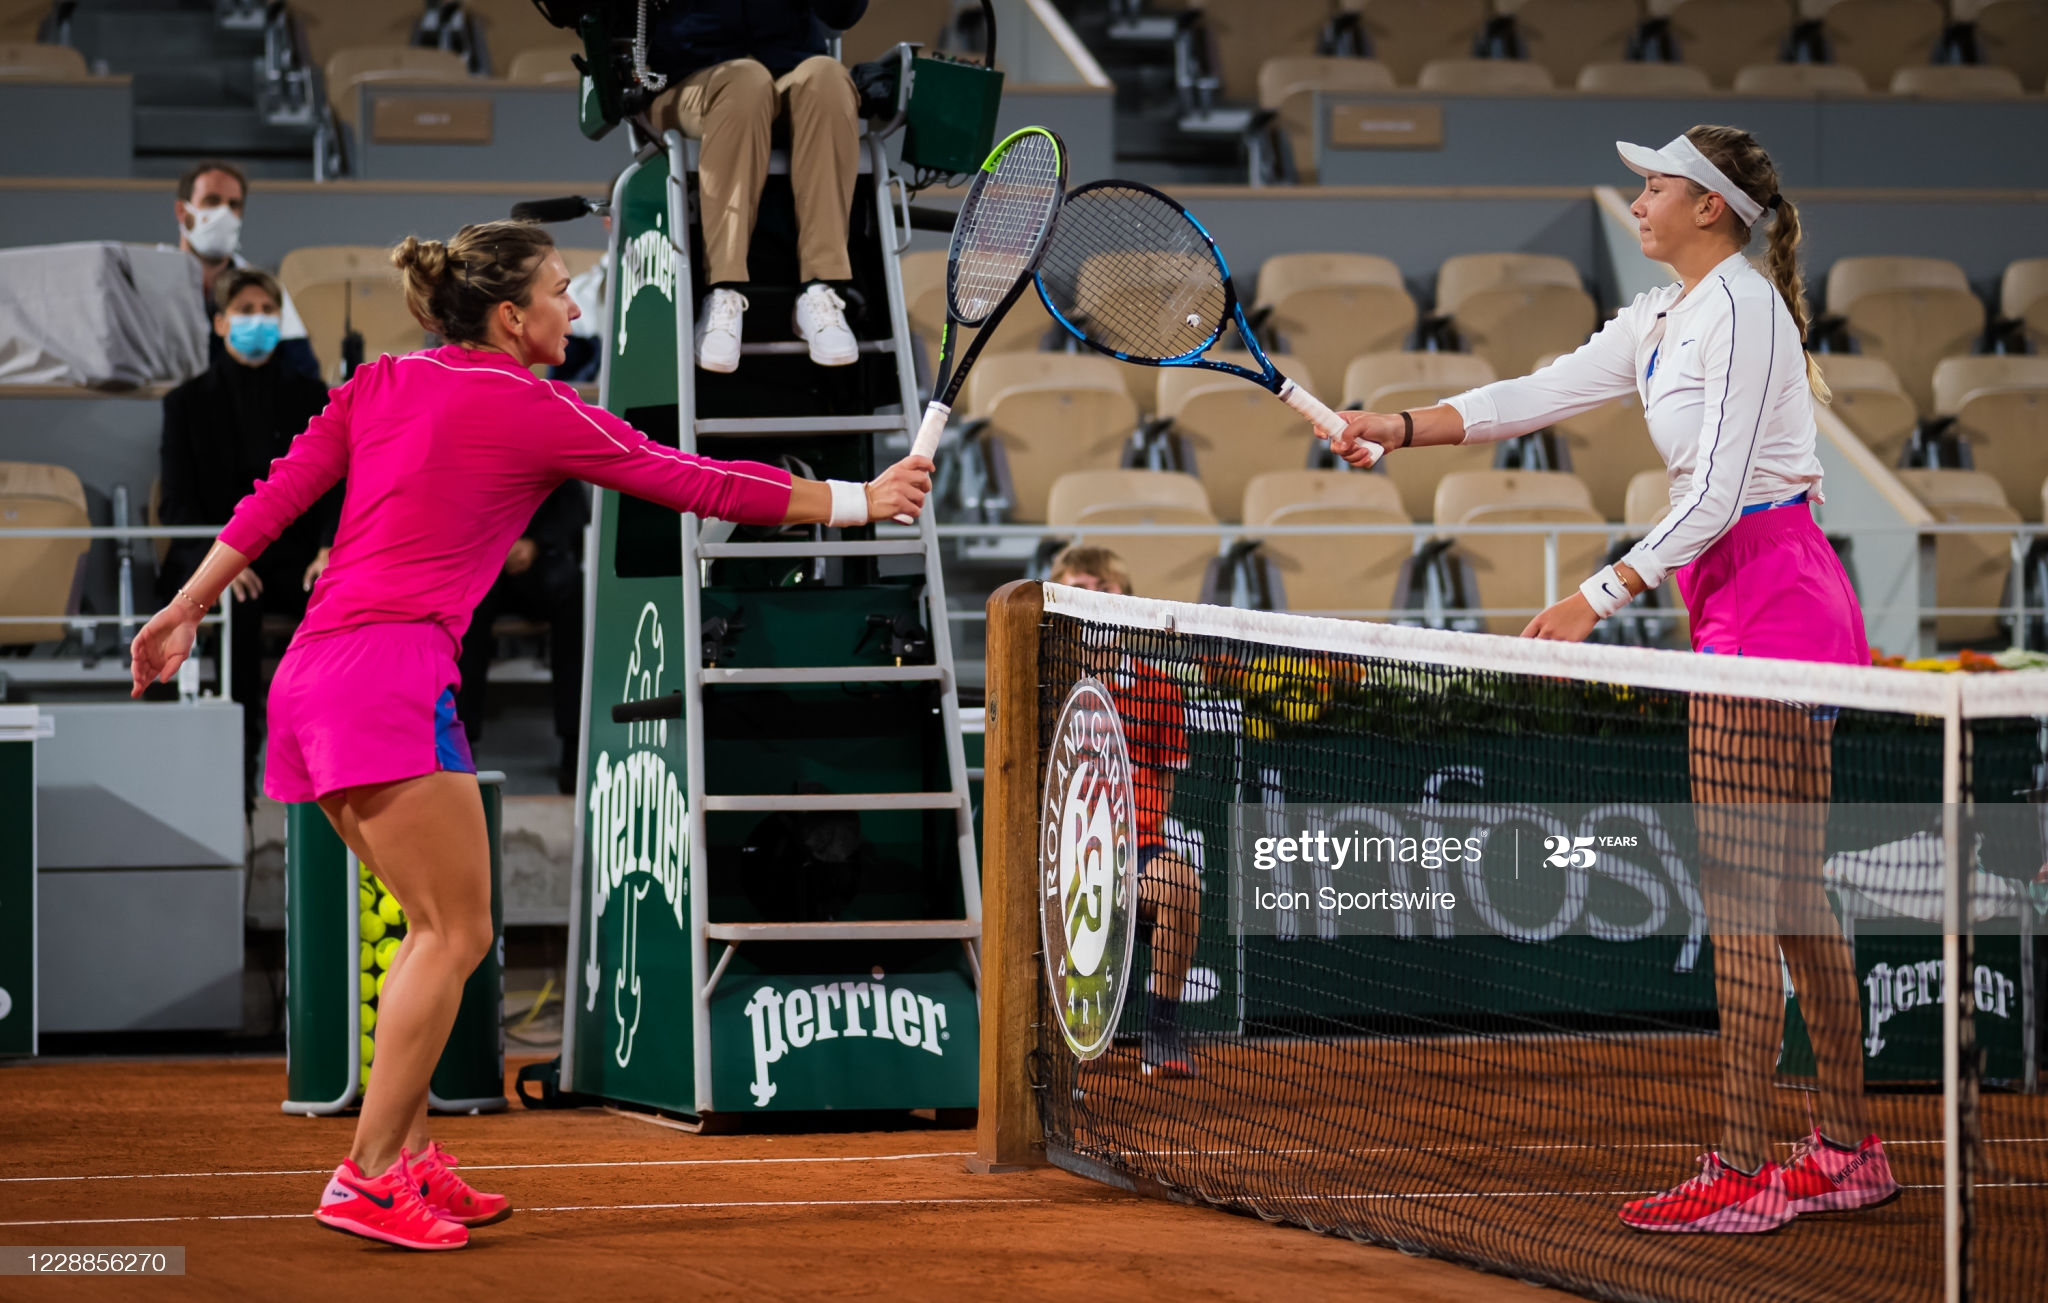 halep and anisimova day 6 french open 2020